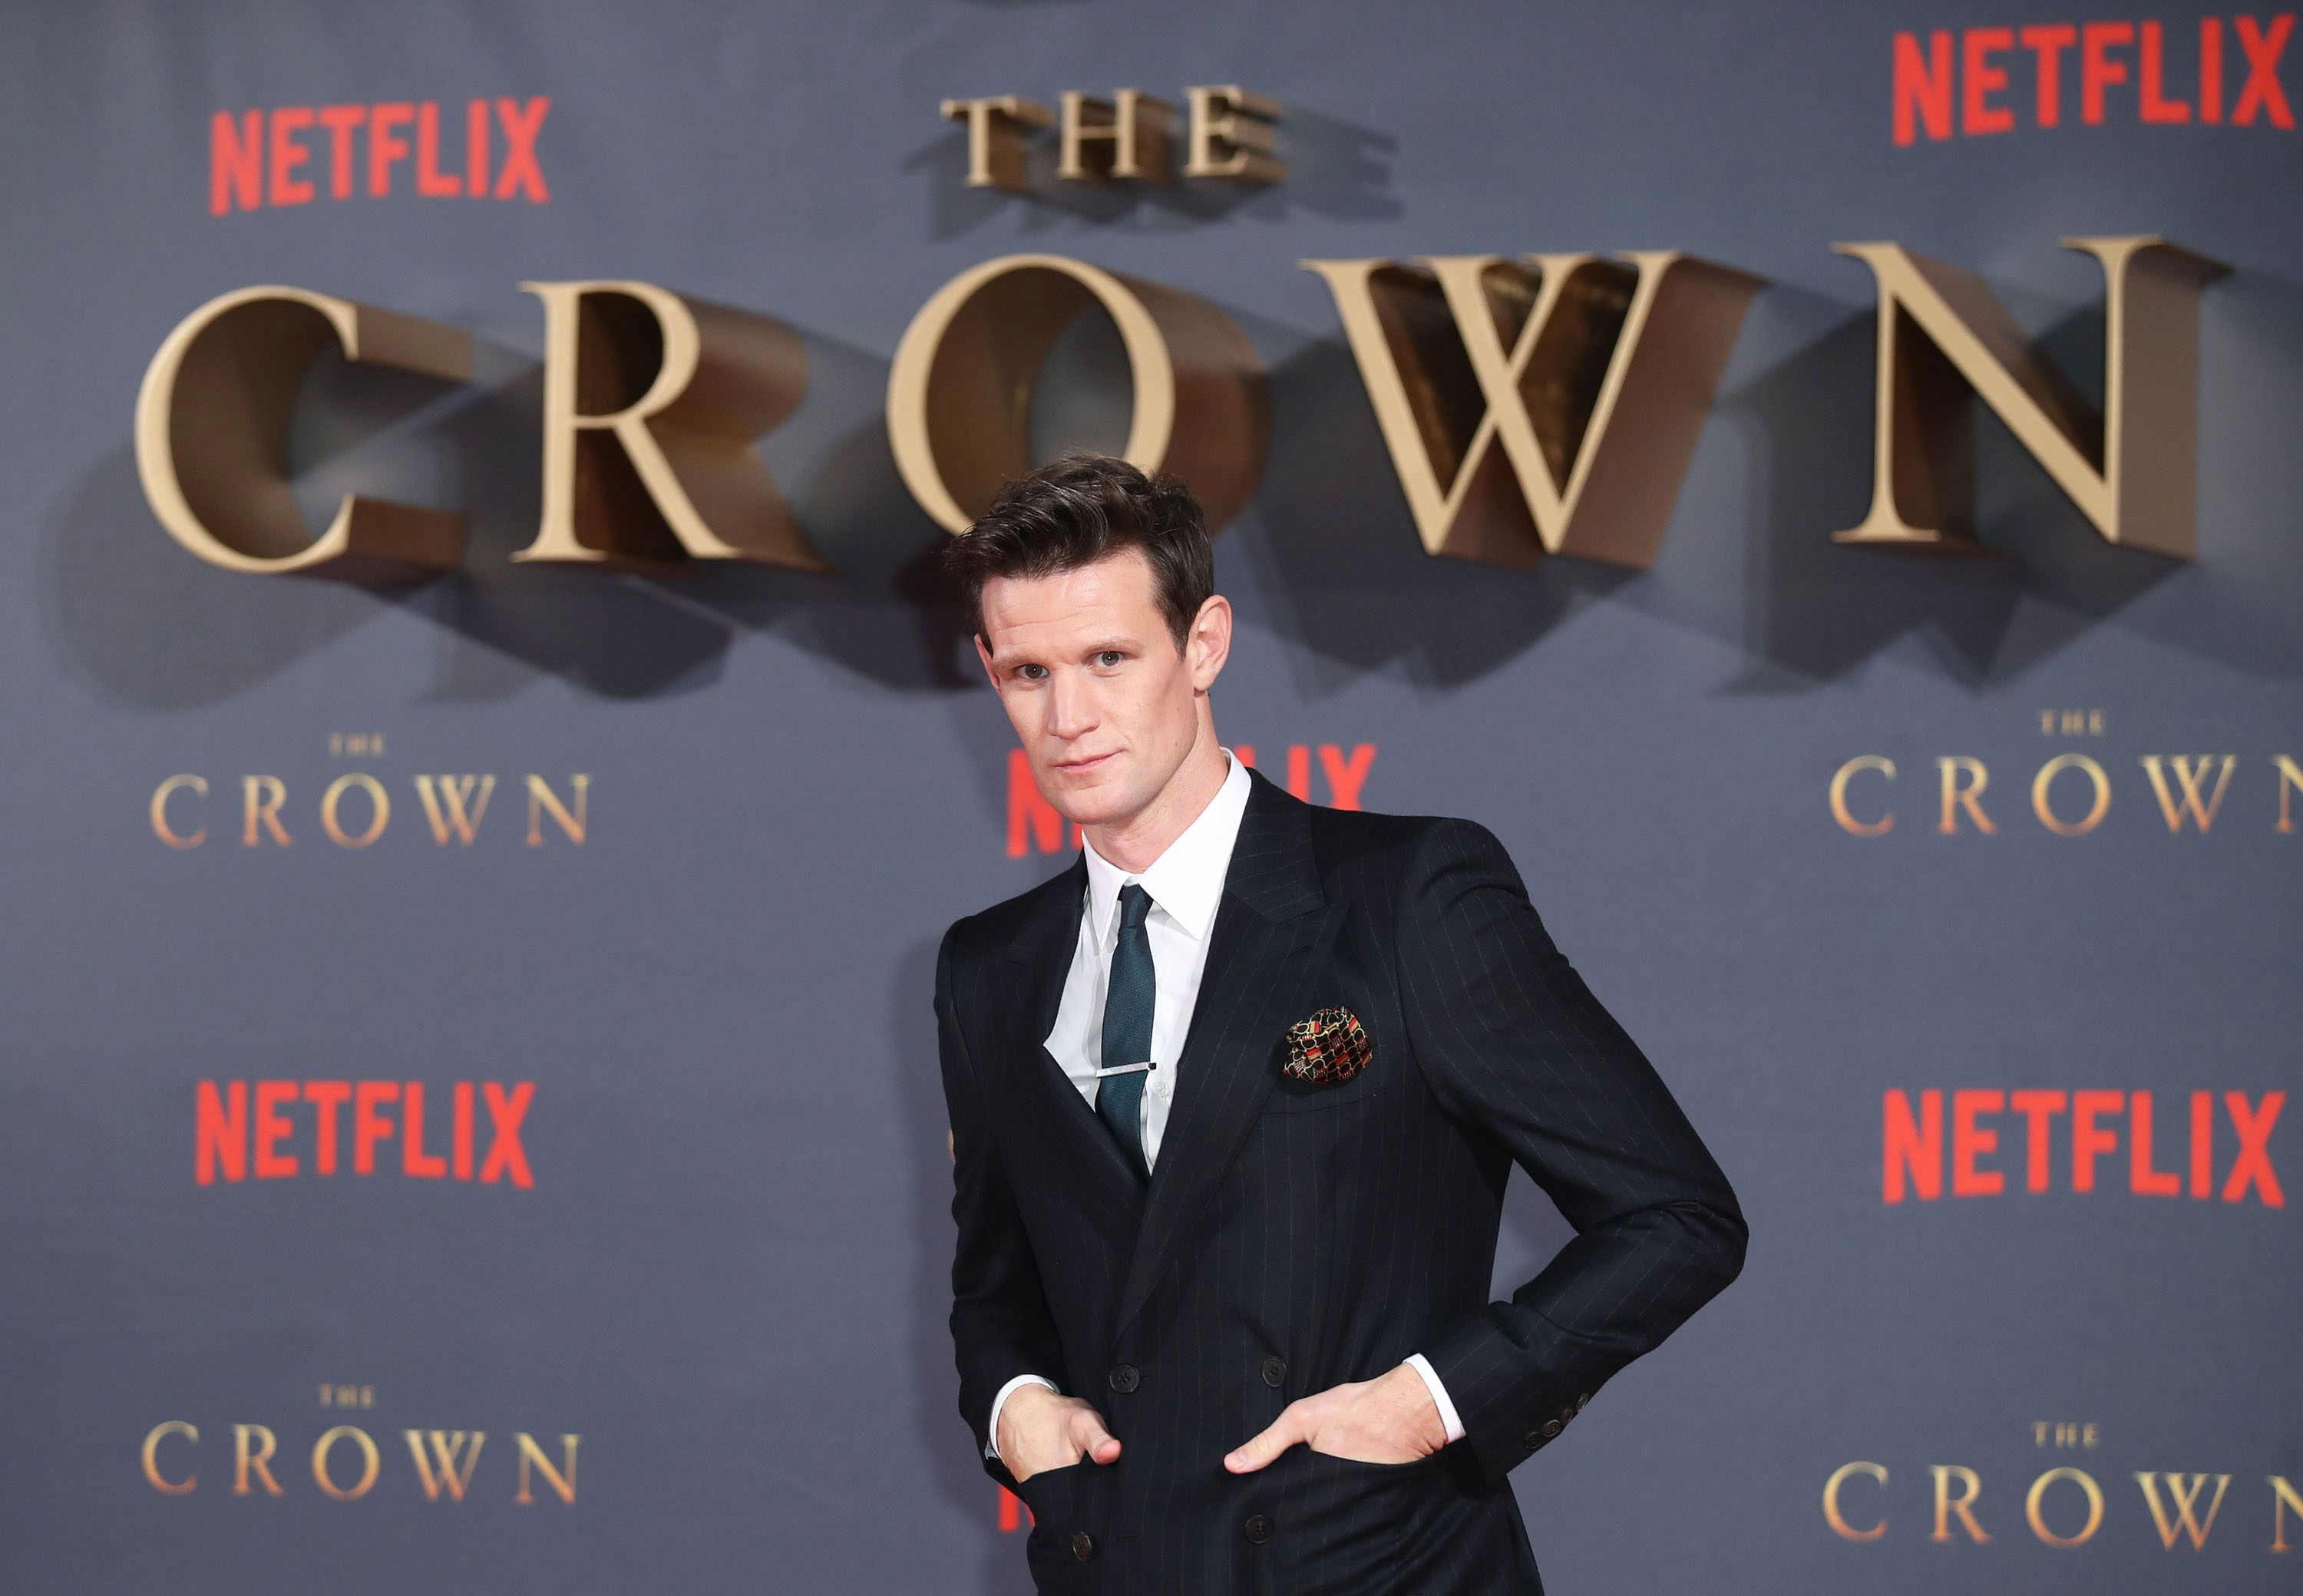 The Crown star Matt Smith confirmed to play cult killer Charles Manson